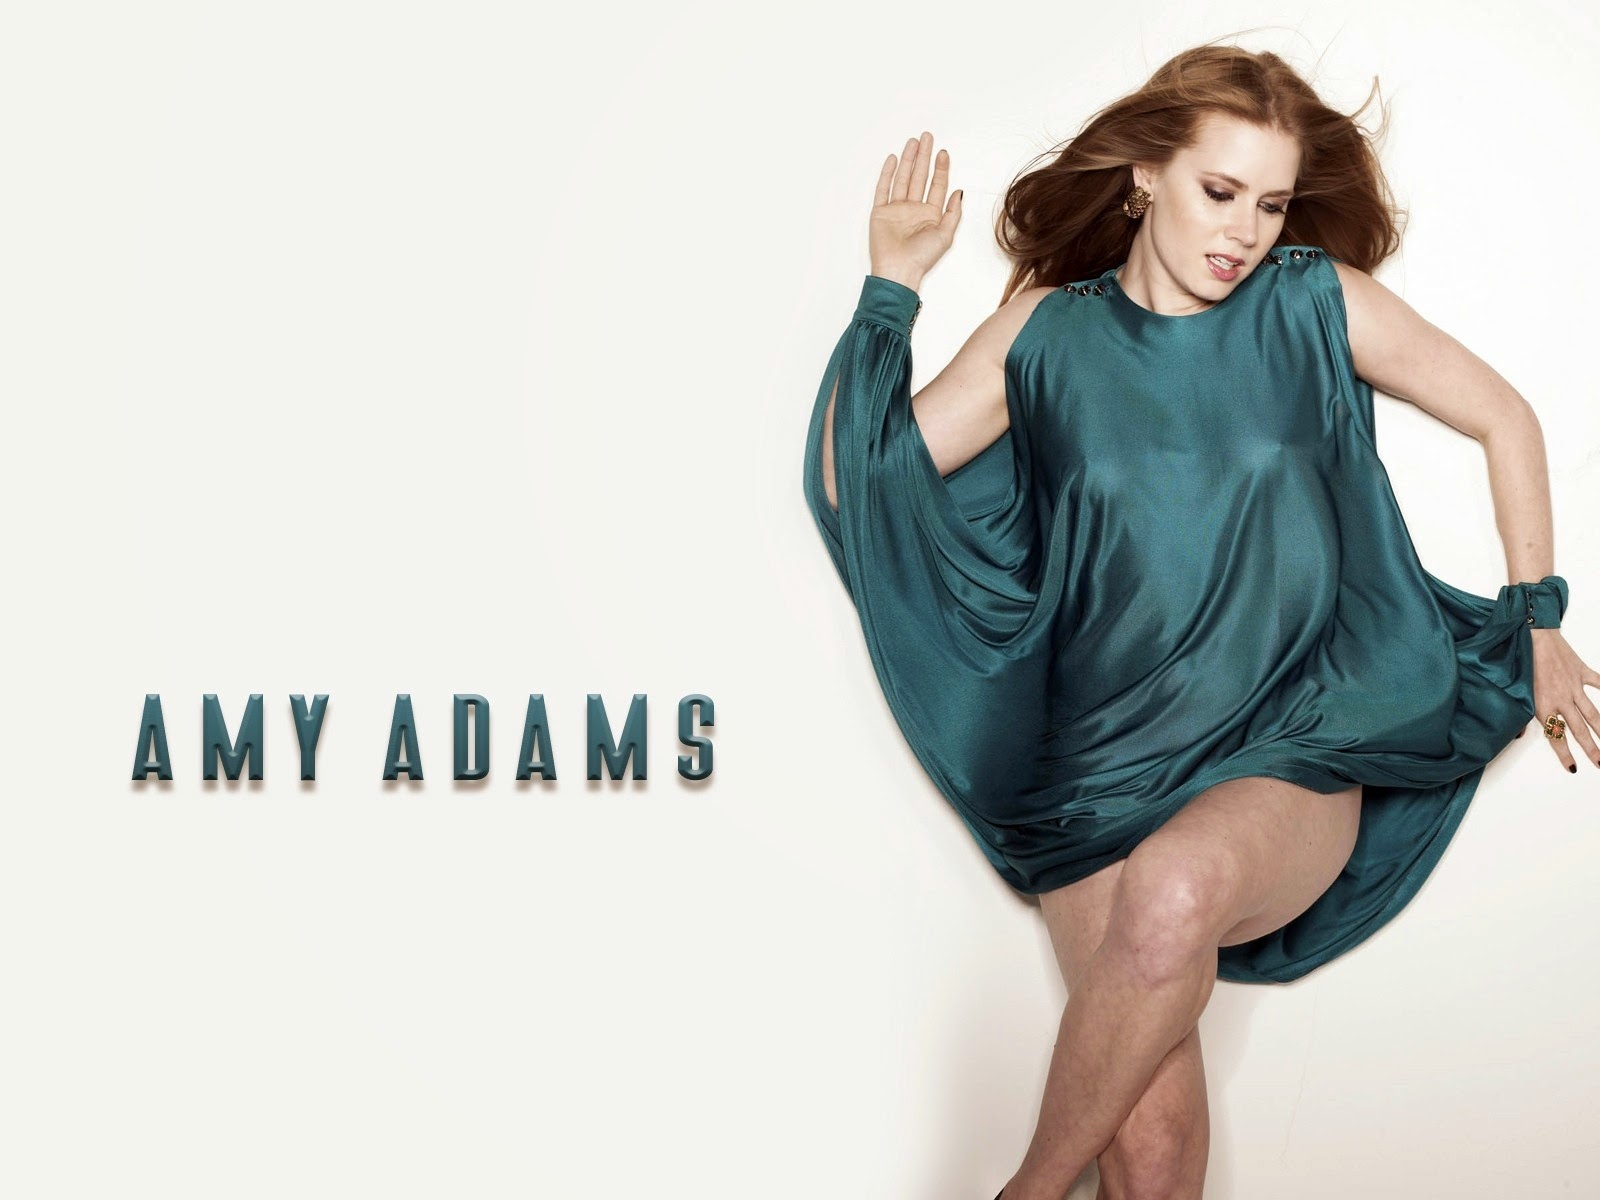 Amy adams high defination sexy and hot wallpapers